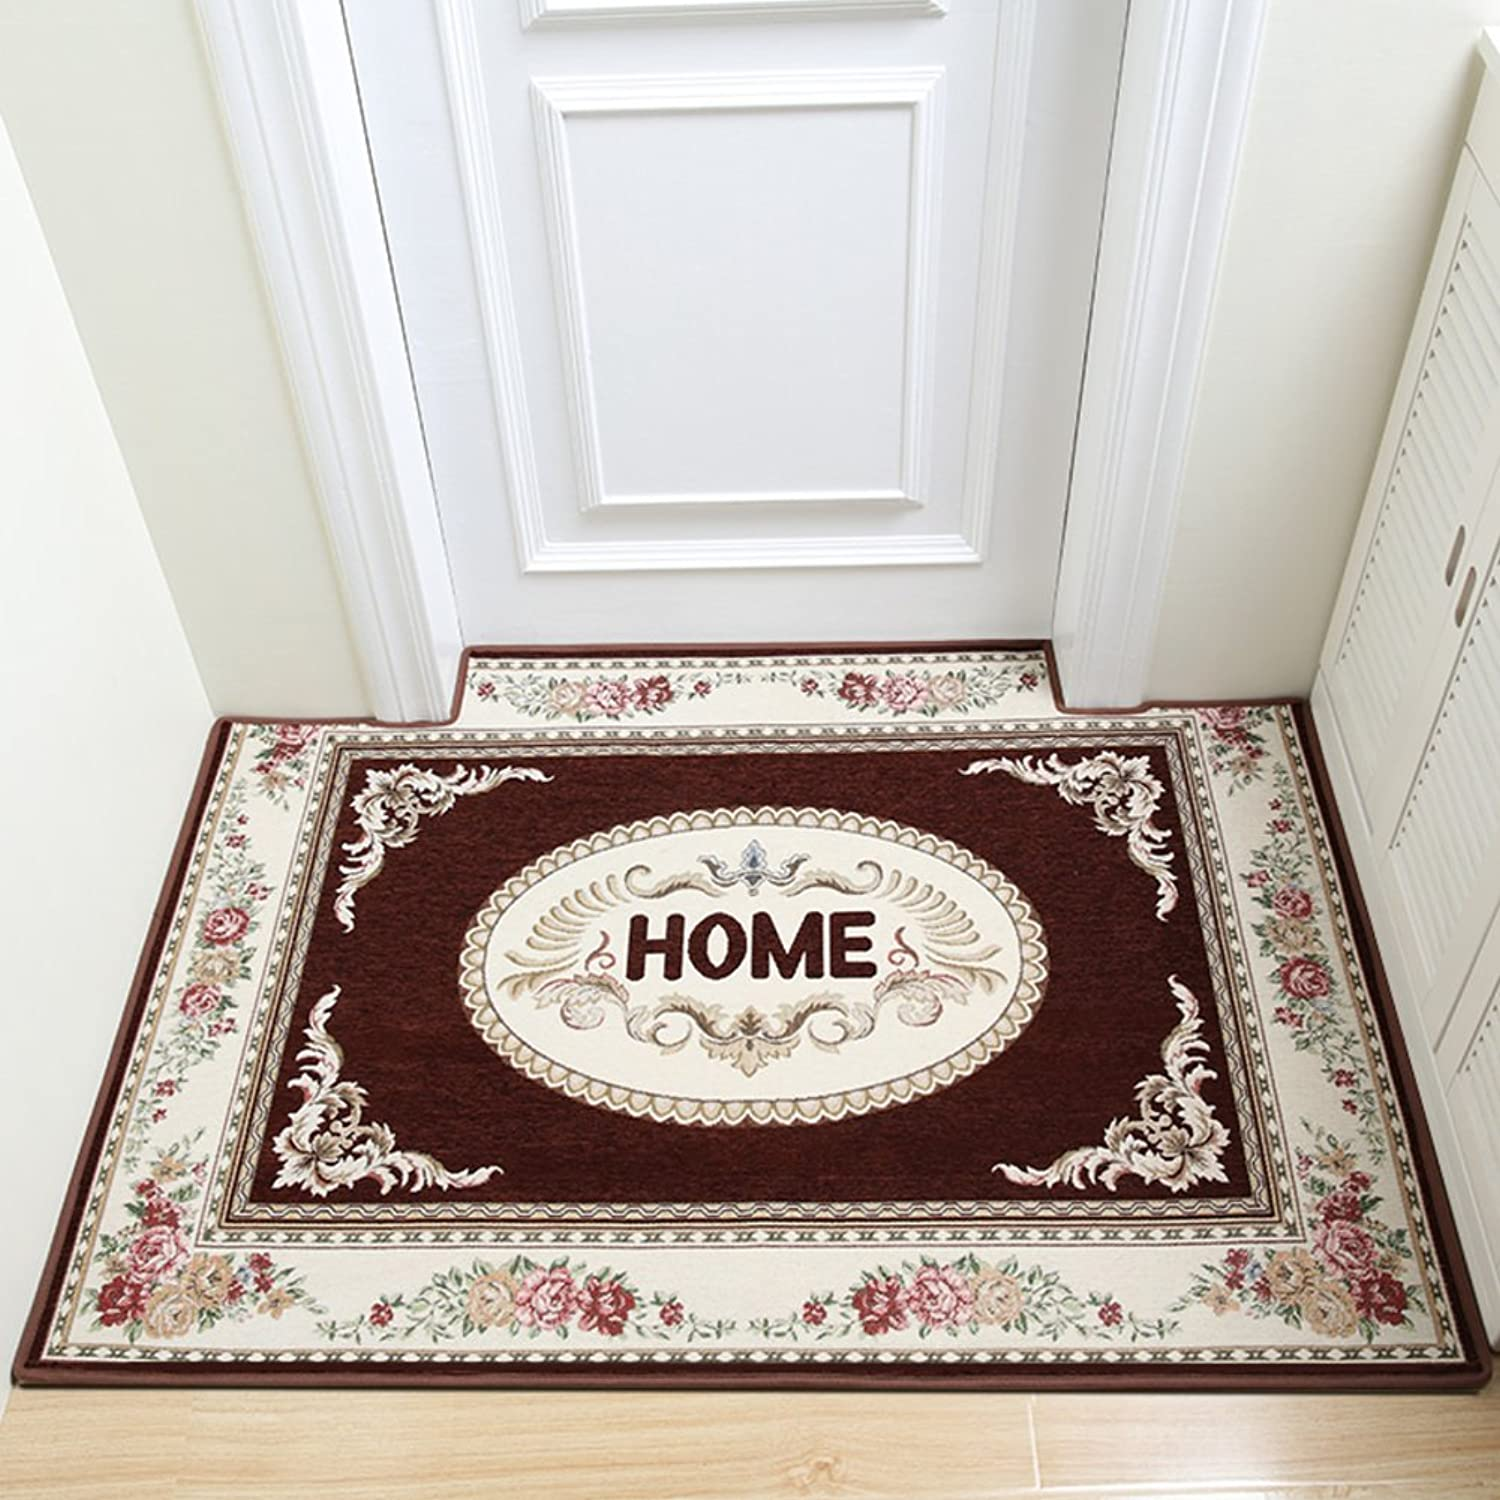 Simple Doormats, Cozy Non-Slip Fastness Carpet, European Style Mat, Bathroom Kitchen Doorway Balcony-B 70x140cm(28x55inch)